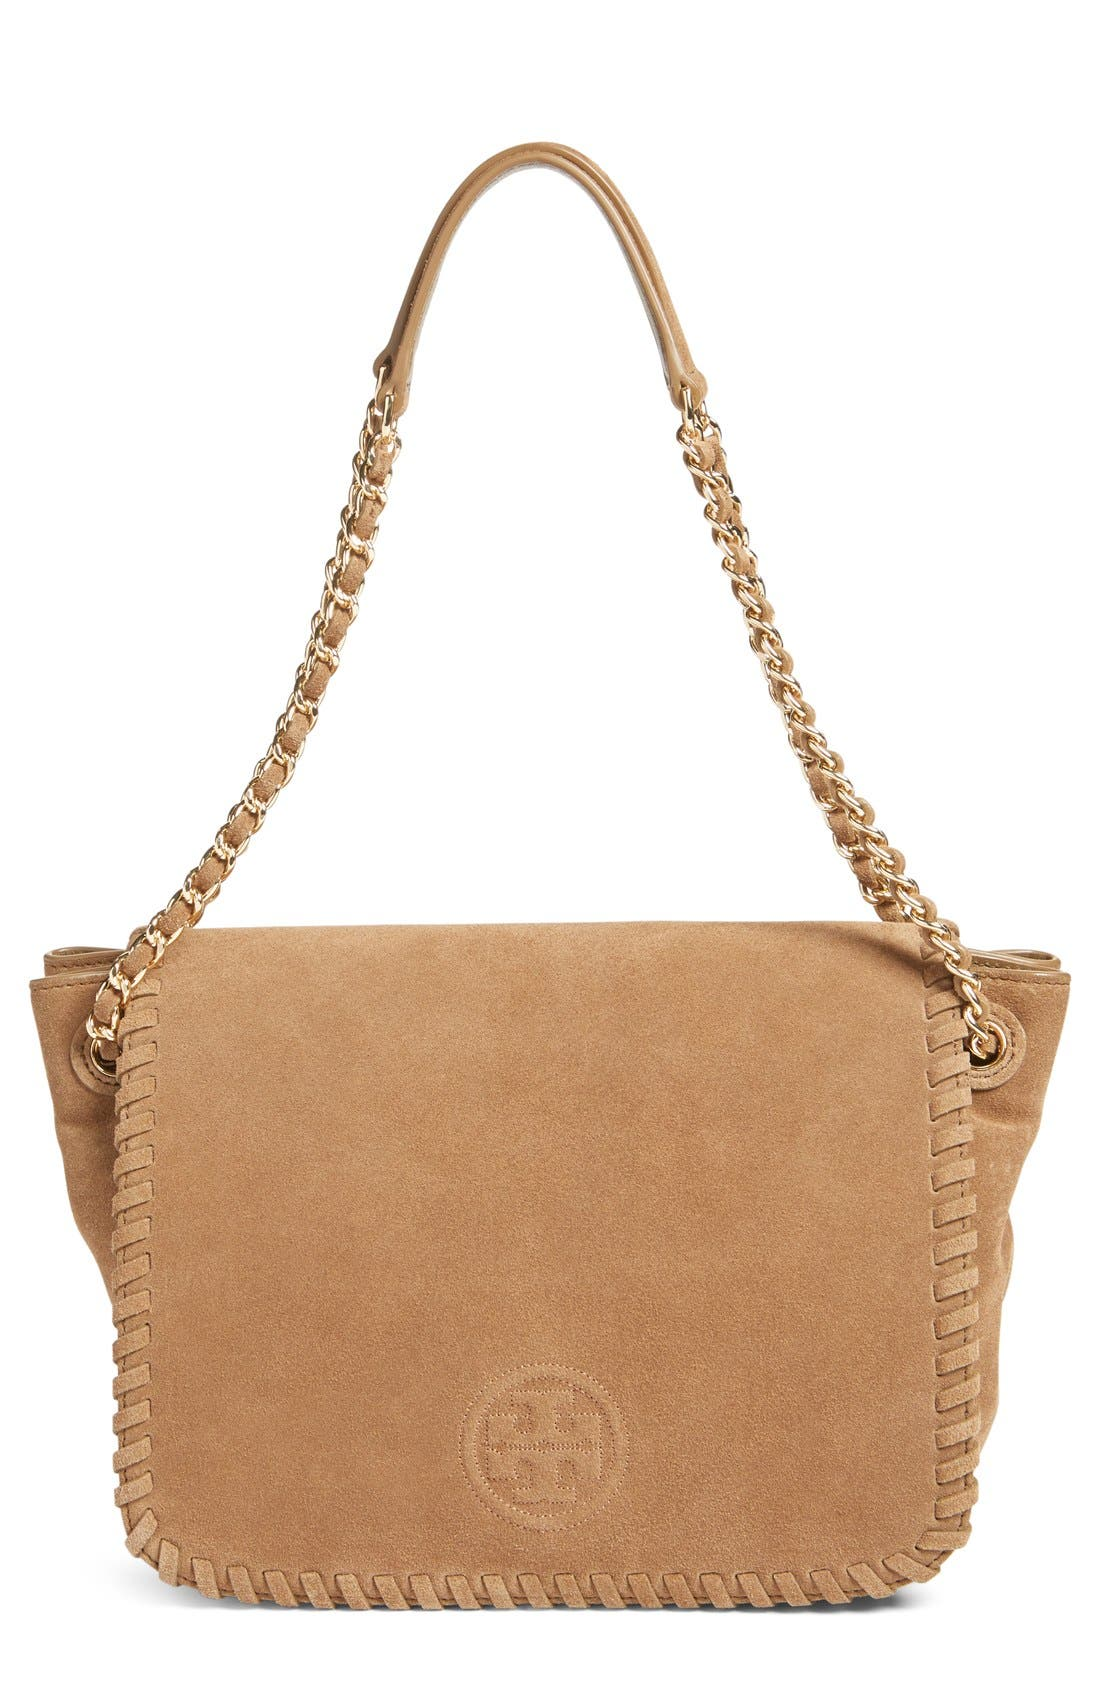 Alternate Image 1 Selected - Tory Burch 'Small Marion' Suede Shoulder Bag